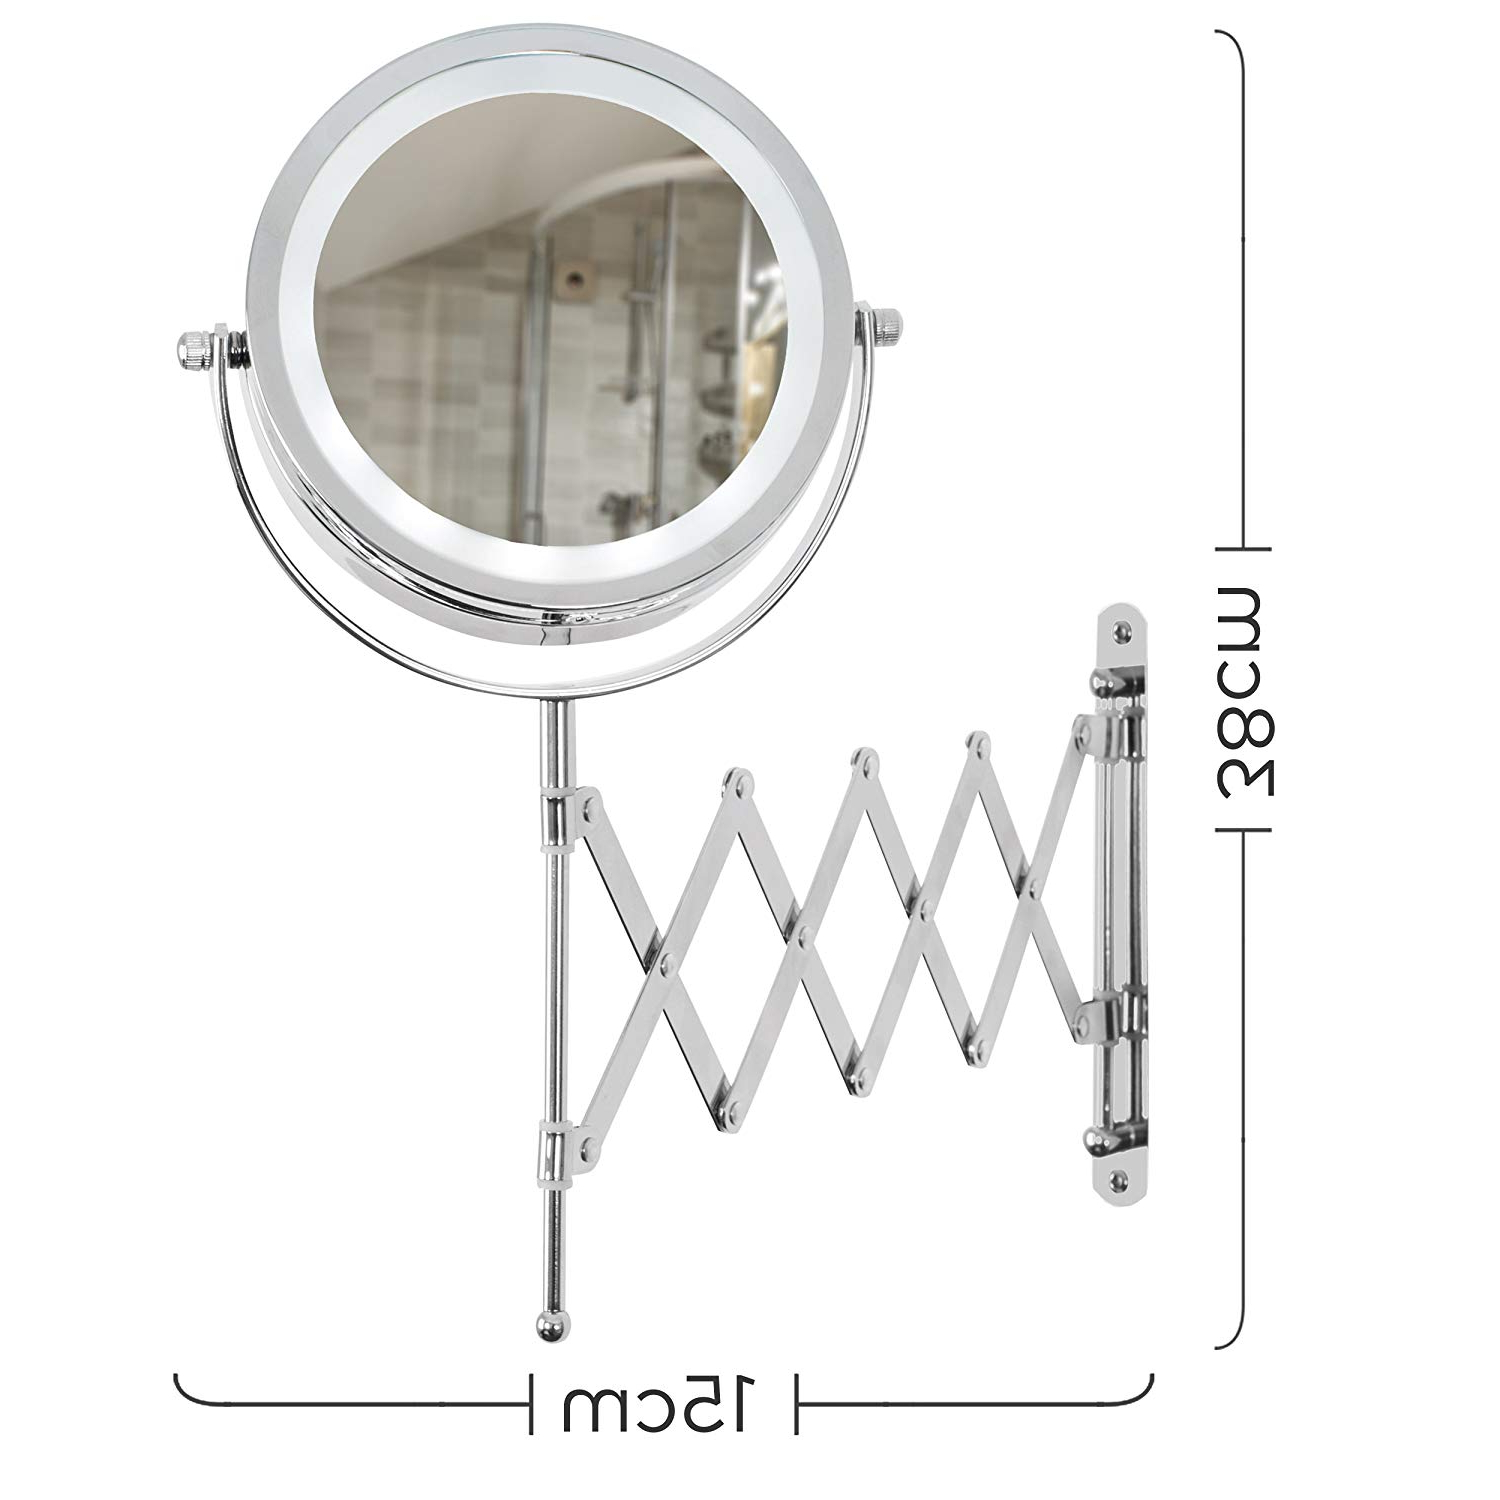 Adjustable Wall Mirrors Pertaining To Famous Adjustable And Extendable Round Chrome Battery Operated Magnifying Bathroom  Led Illuminated Make Up Cosmetic Shaving Vanity Wall Mounted Mirror Light (View 6 of 20)